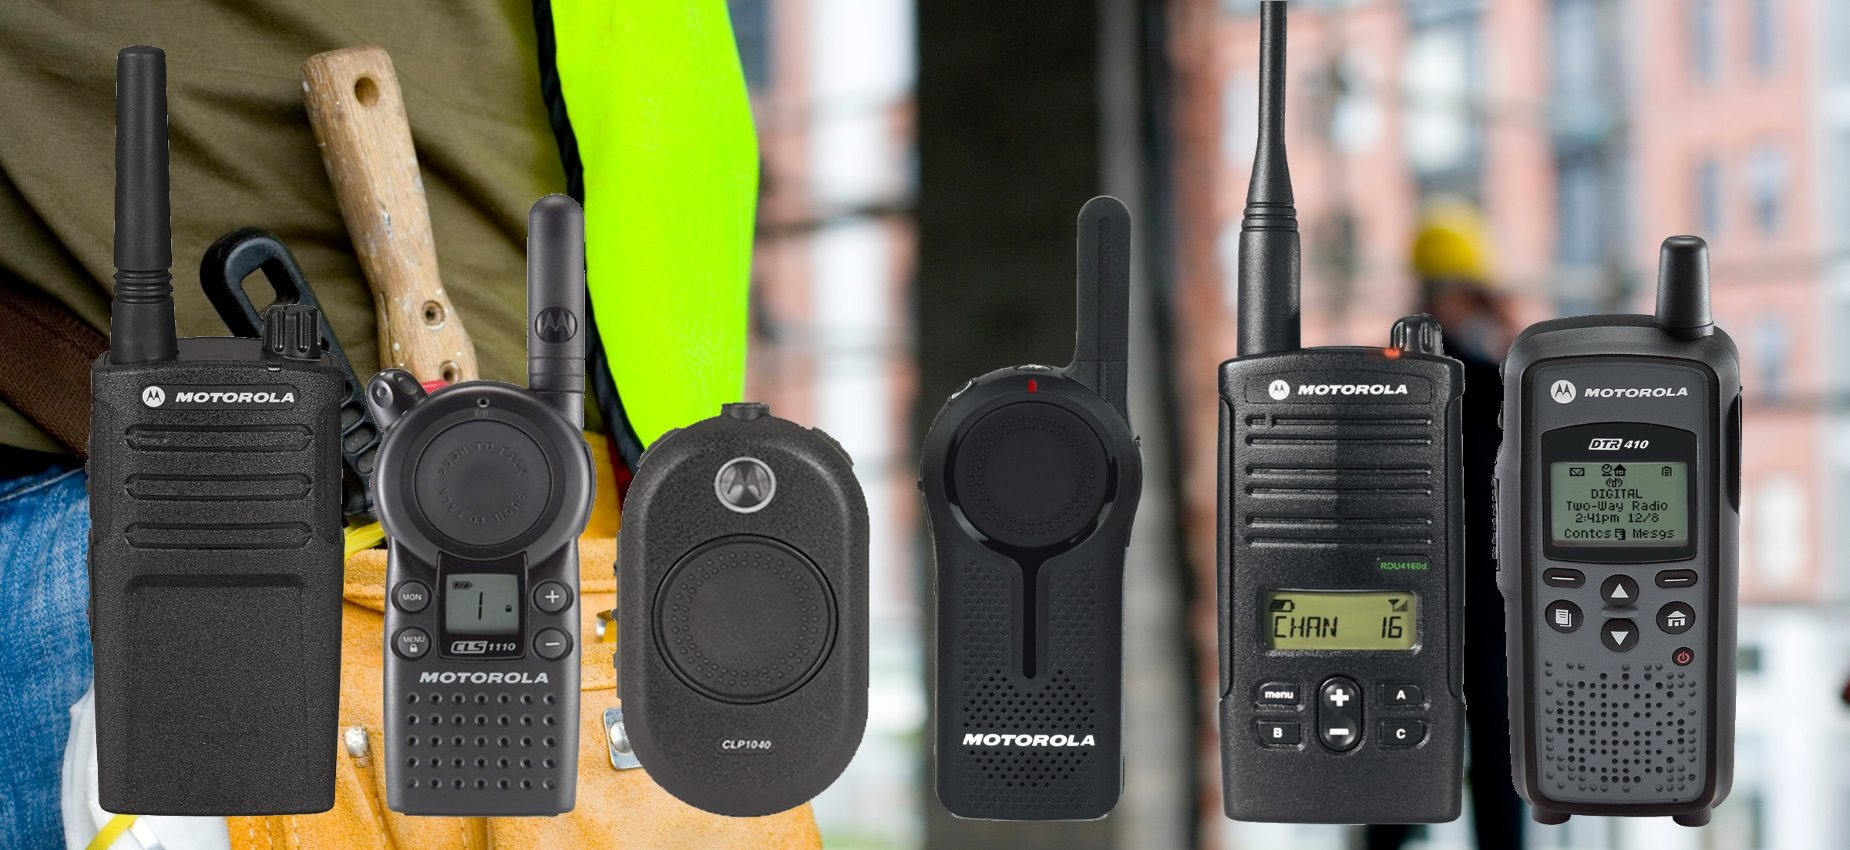 office radios. Contemporary Radios NU RADIOS Two Way Business Professional Kenwood And Motorola Radios For  Your Construction Company Retail Store Dental Office School Most Job Sites For Office